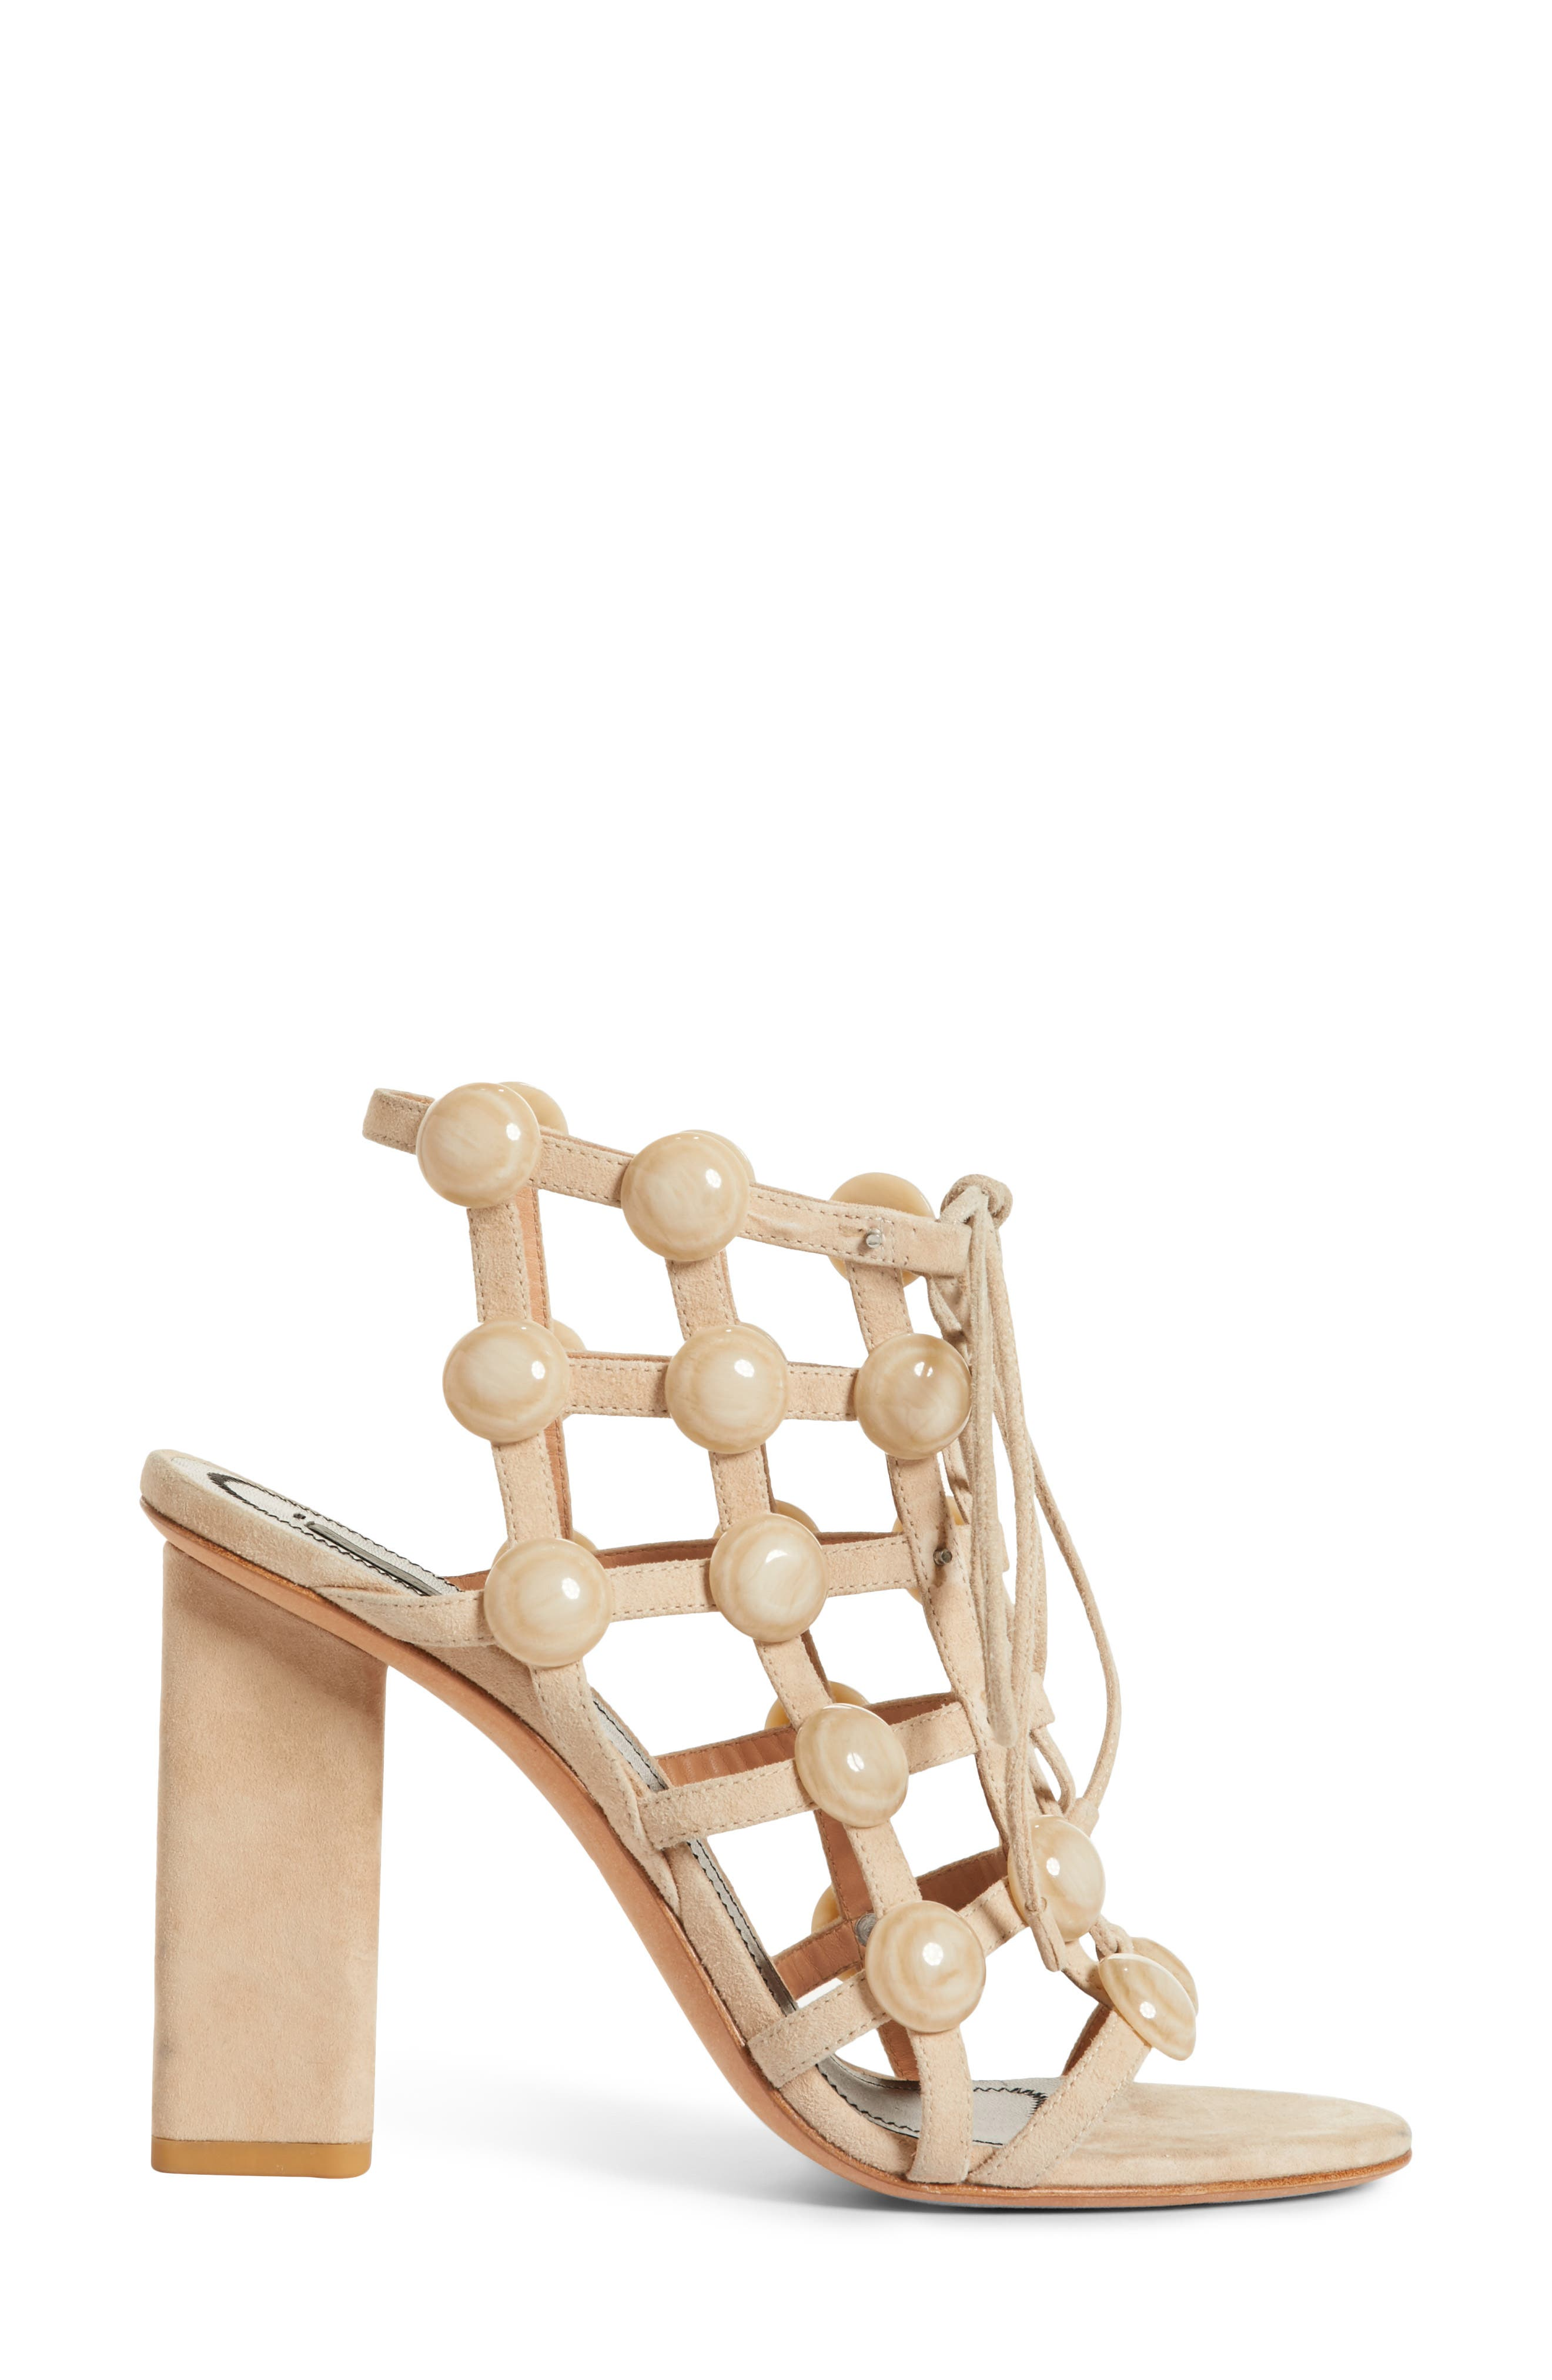 Rubie Studded Sandal,                             Alternate thumbnail 3, color,                             Cashmere